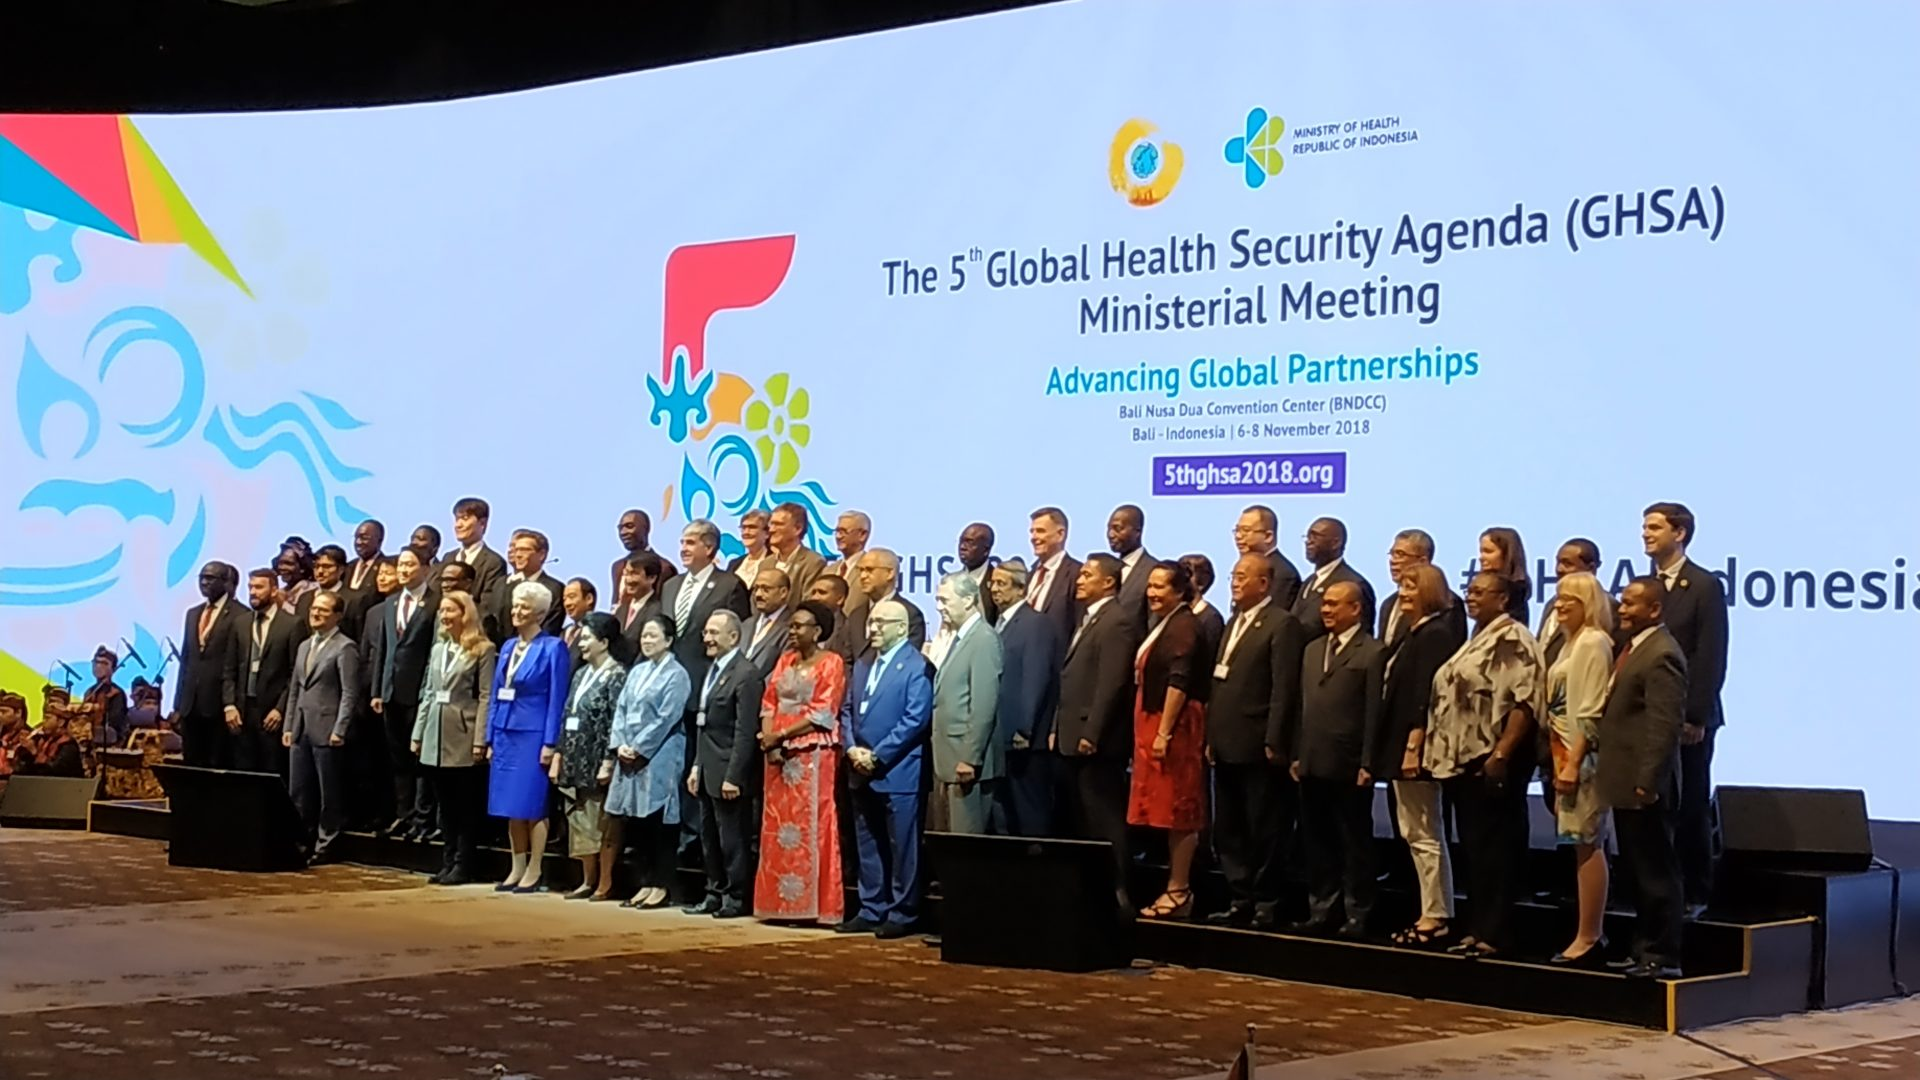 GHSA Global Health Security Agenda 2018